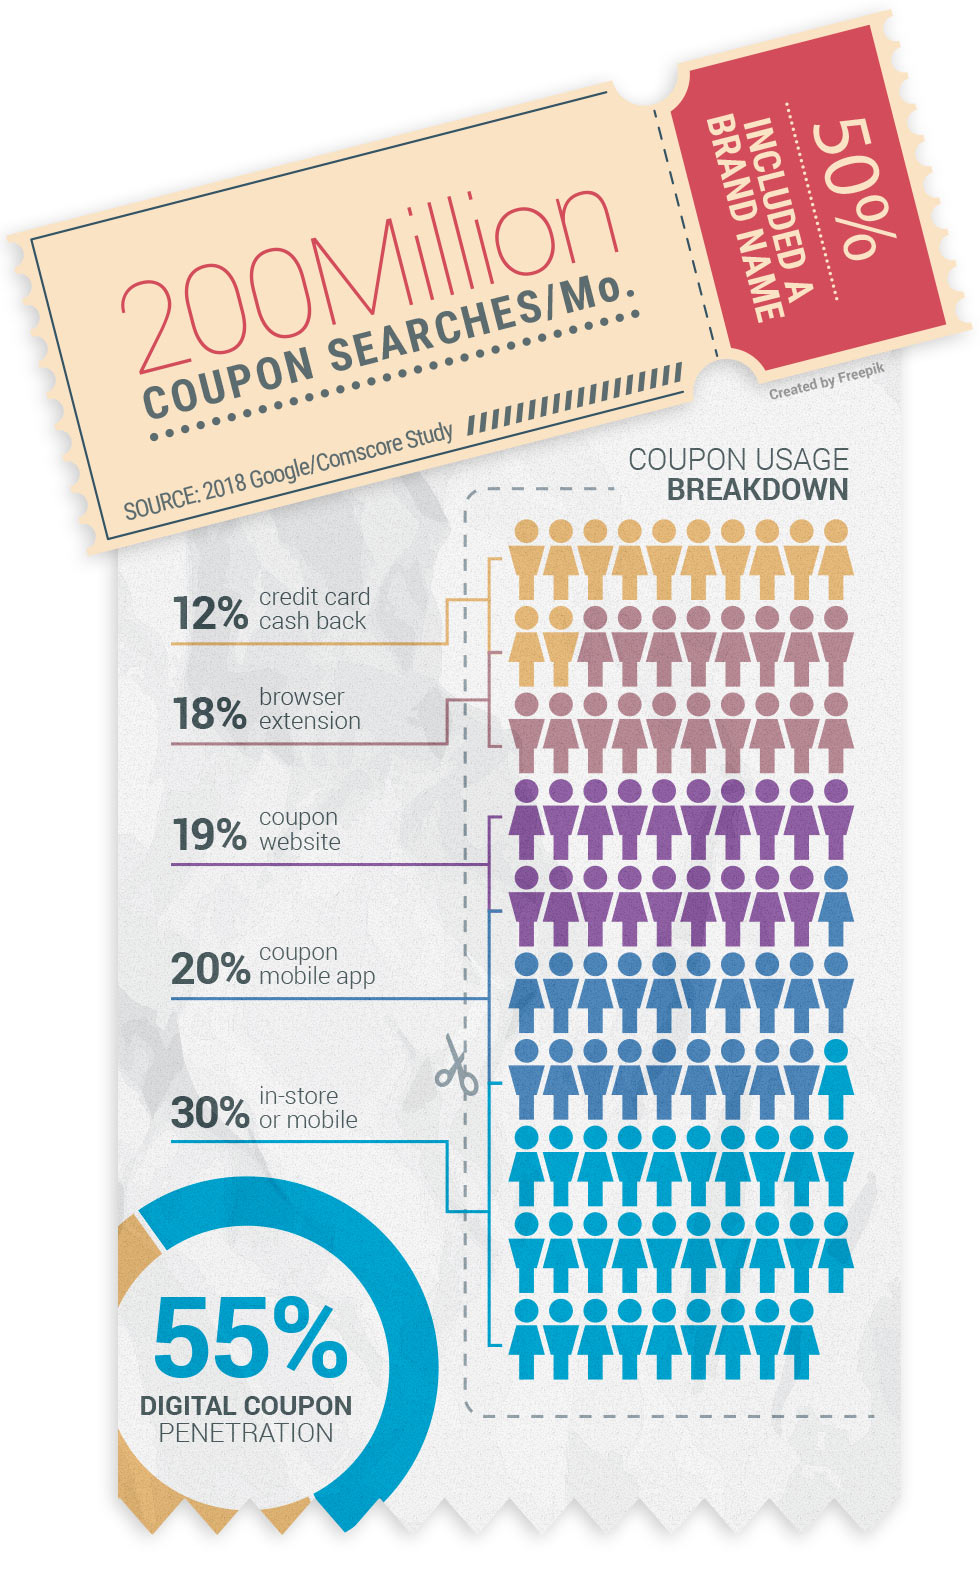 Google Comscore Study - The Truth About Coupon Affiliates